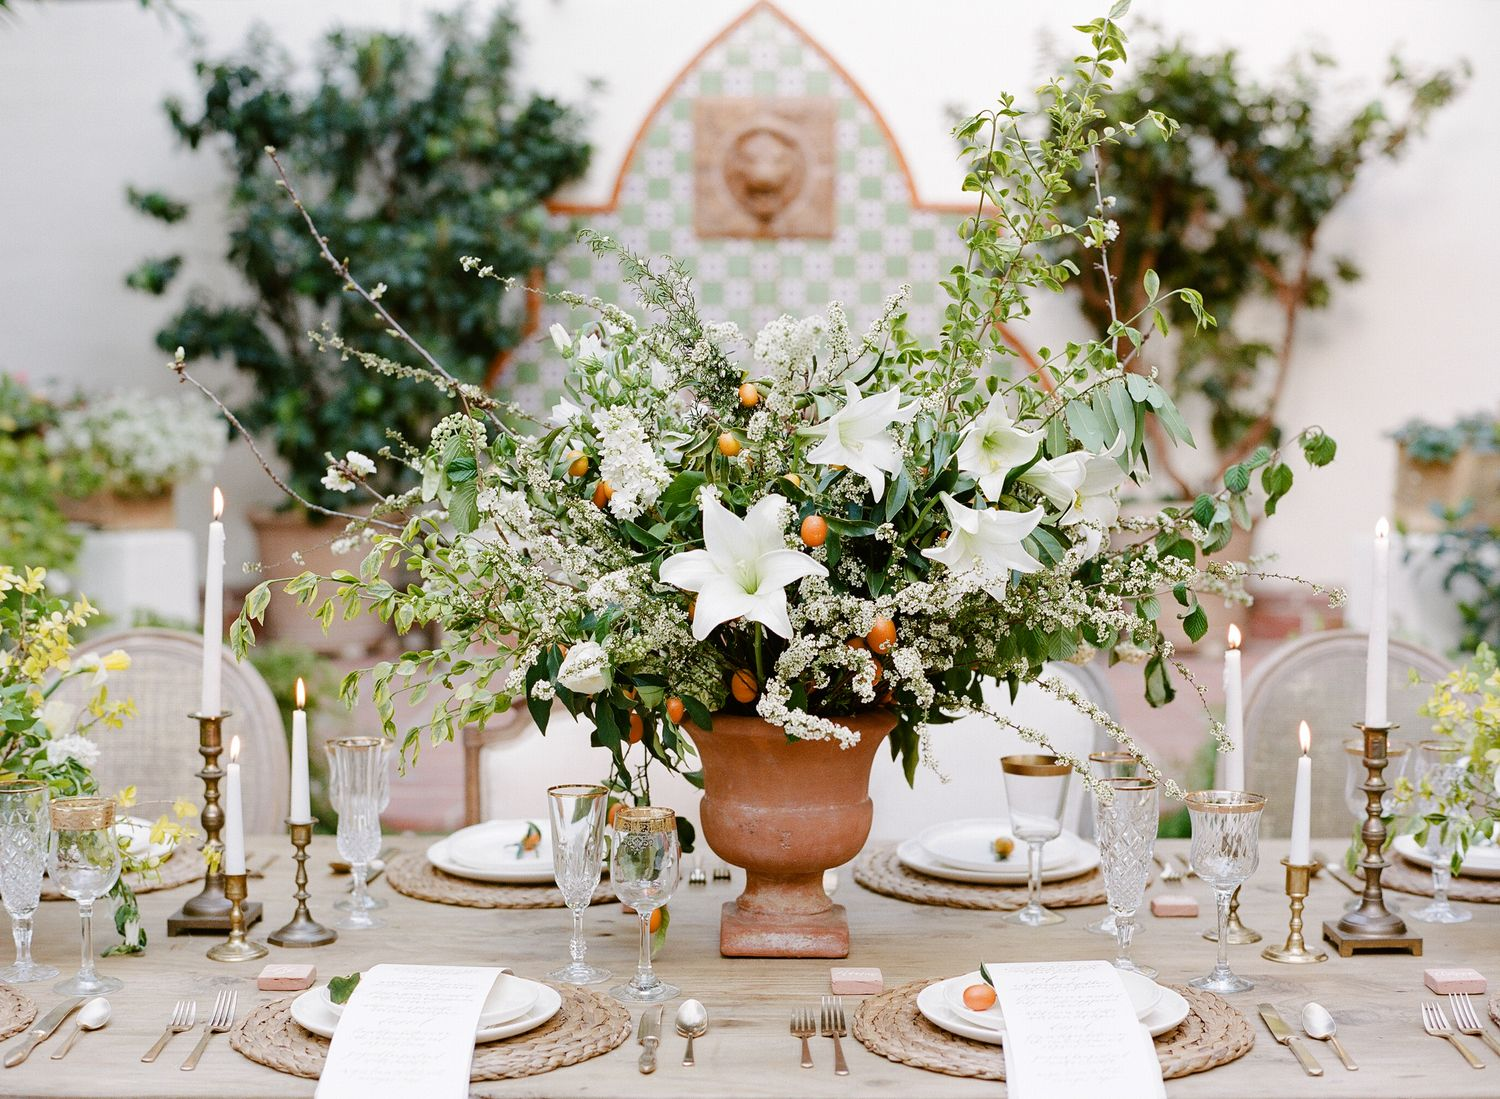 Table spring wedding tablescapes - 25 Gorgeous Spring Wedding Tablescapes